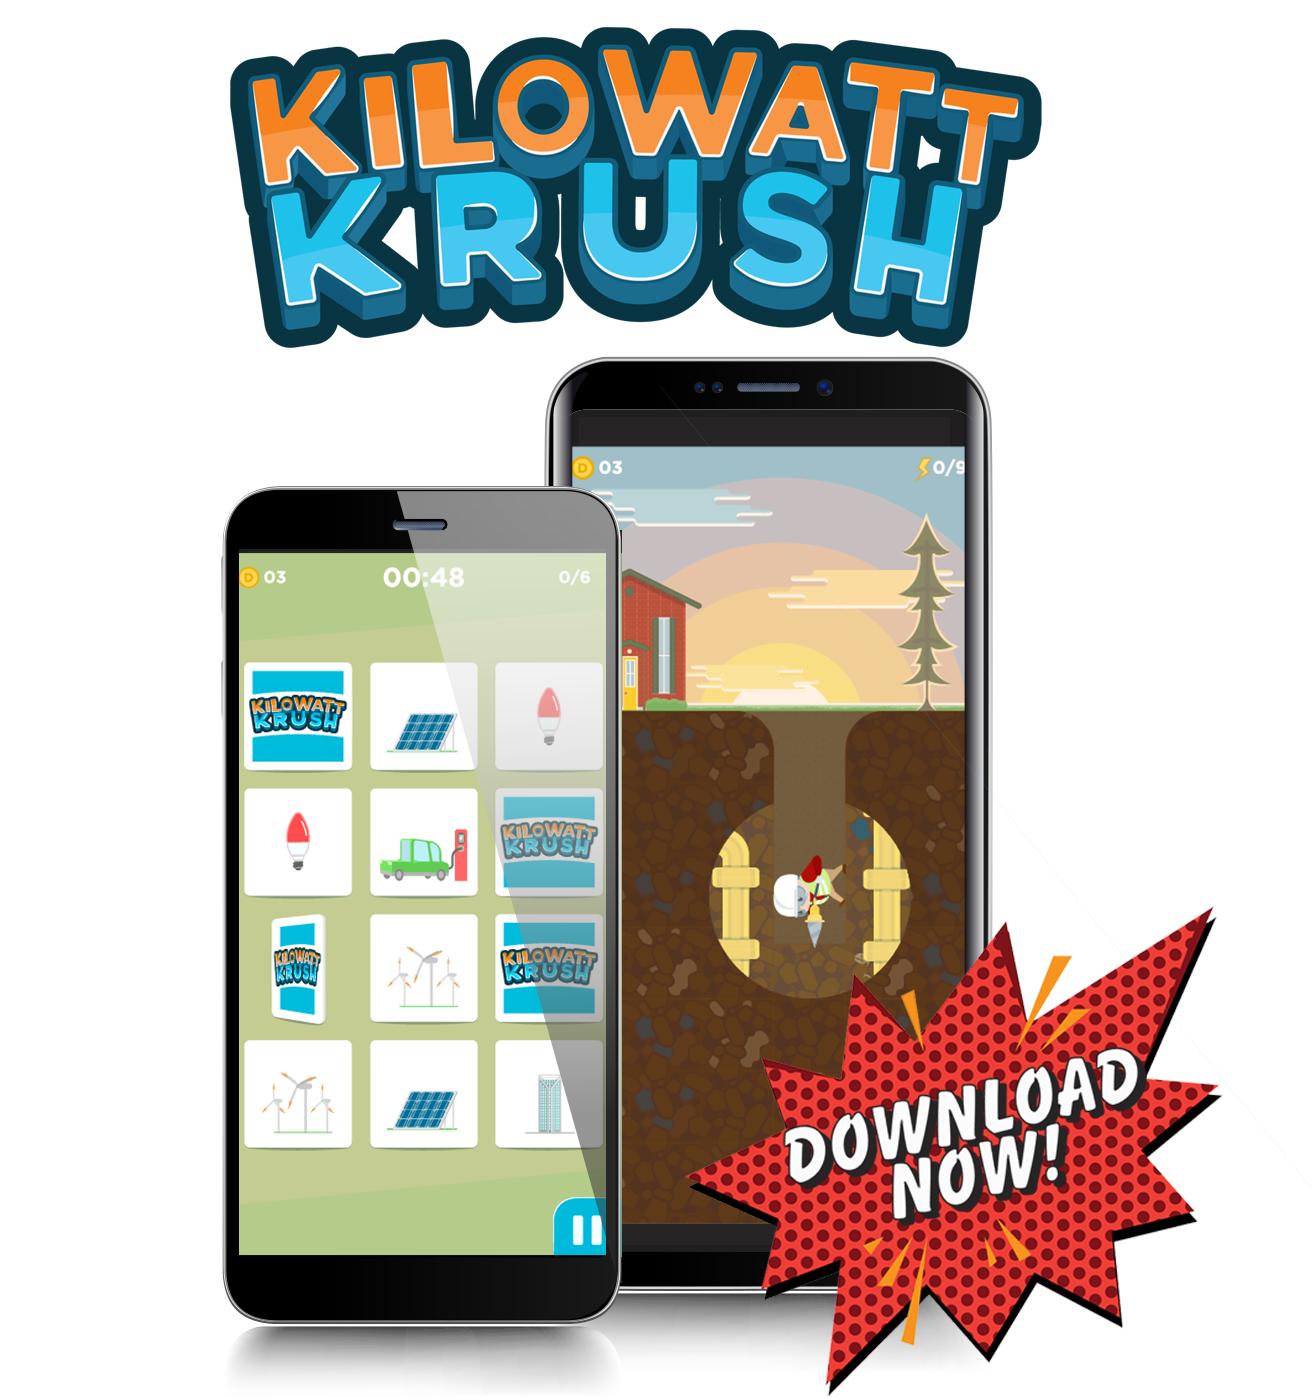 Kilowatt Krush